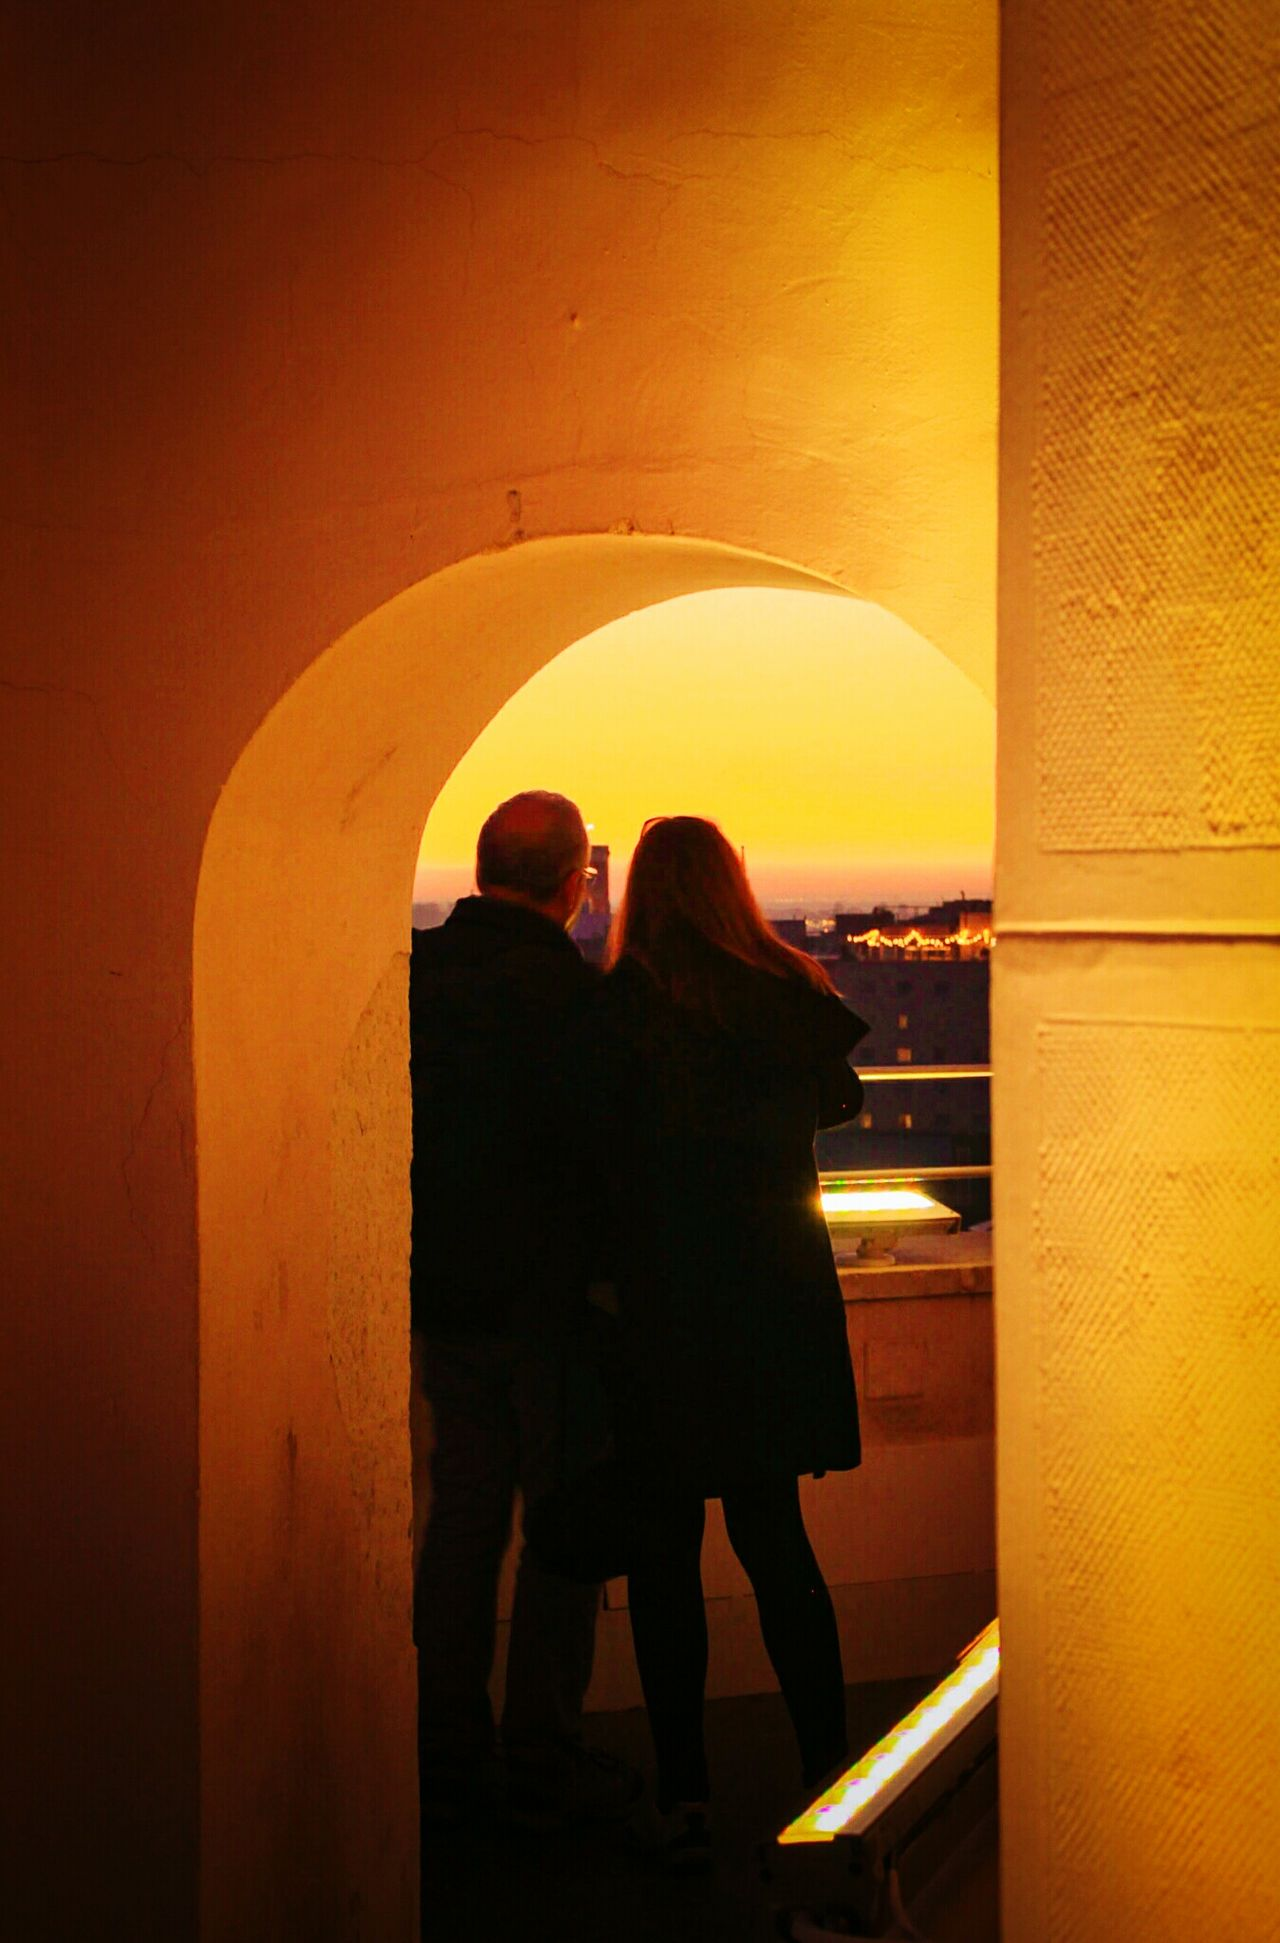 Rear View Romance Couple - Relationship Two People Arch Togetherness Love Standing Adults Only Night People Sunset Watching The Sunset Orange Color Yellow And Orange Palacio De Correos Madrid Mirador EyeEm Gallery Check This Out The City Light